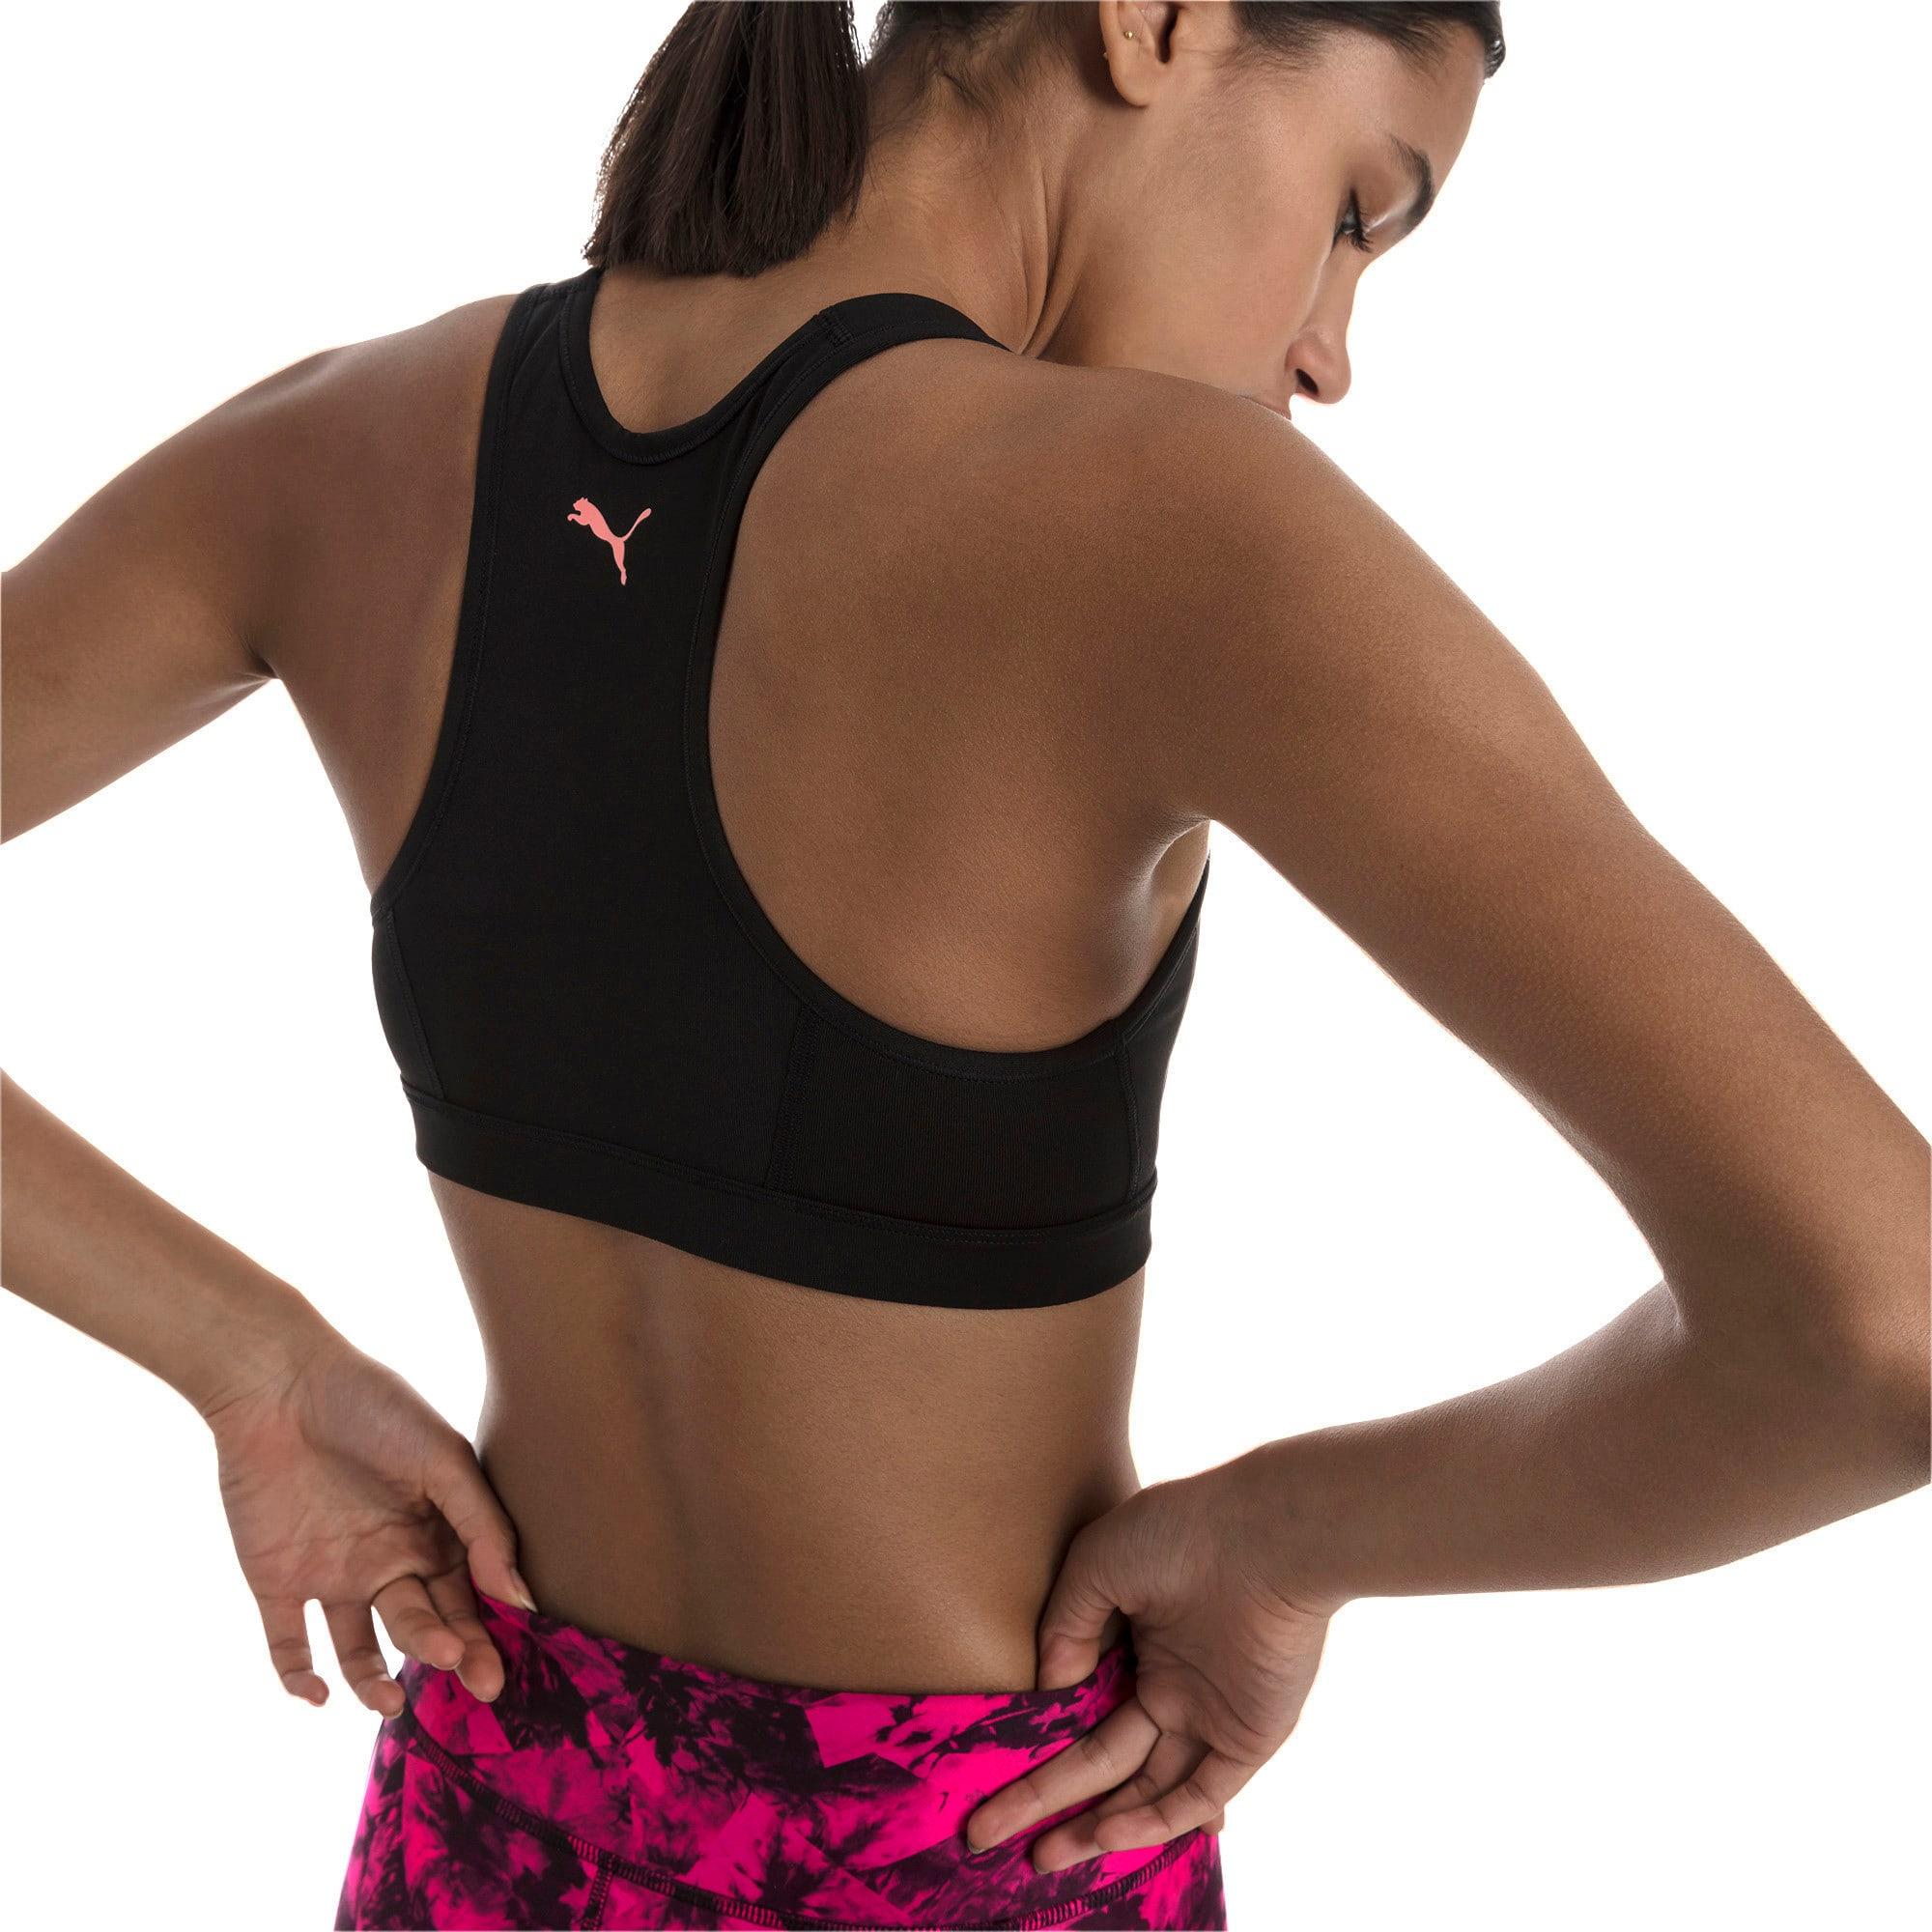 Thumbnail 2 of 4Keeps Mid Impact Women's Bra Top, Puma Black-Bright Peach PUMA, medium-IND